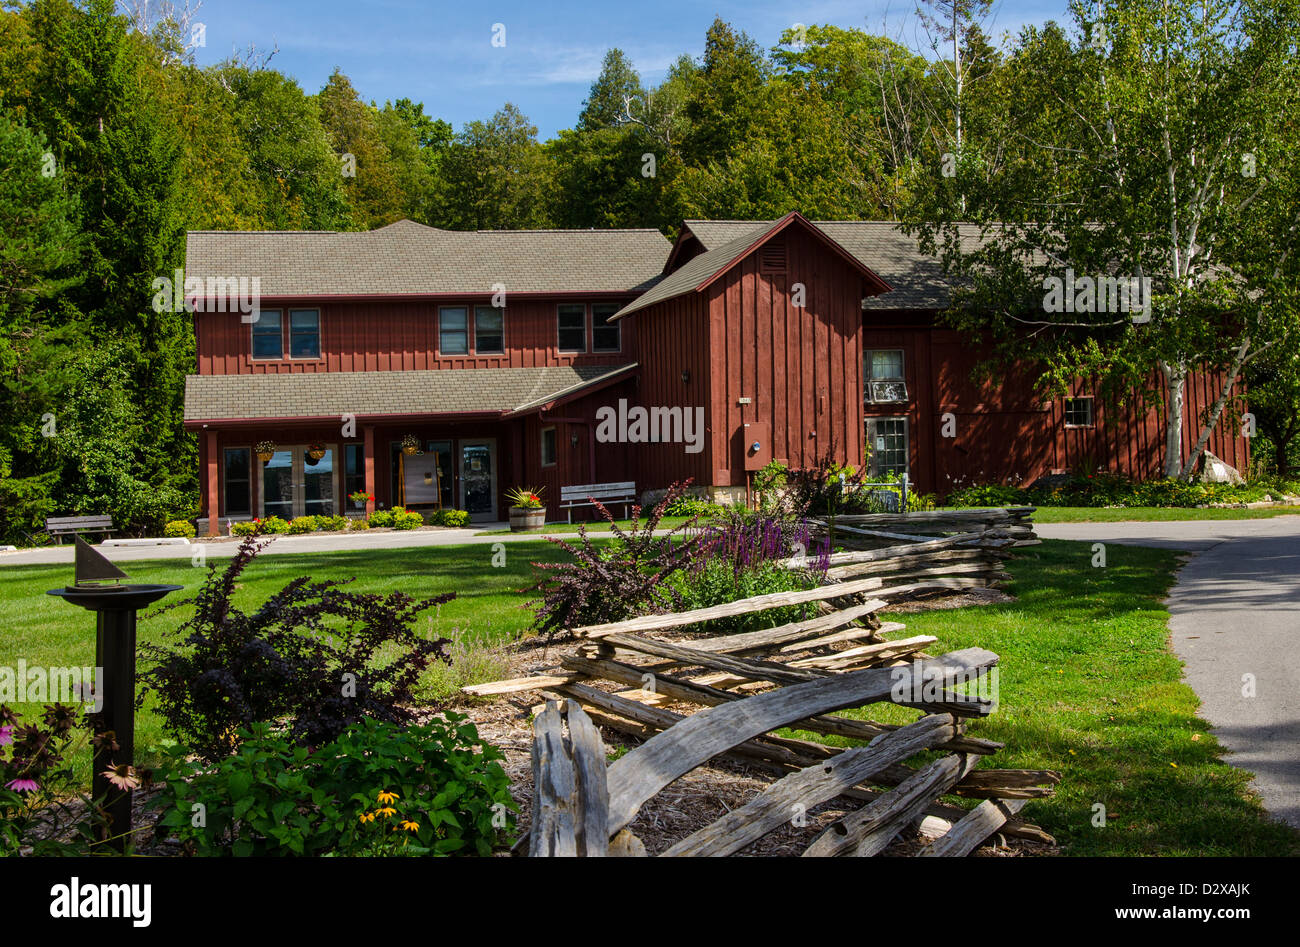 The Anderson Barn History Center in the Door County town of Ephraim, Wisconsin Stock Photo